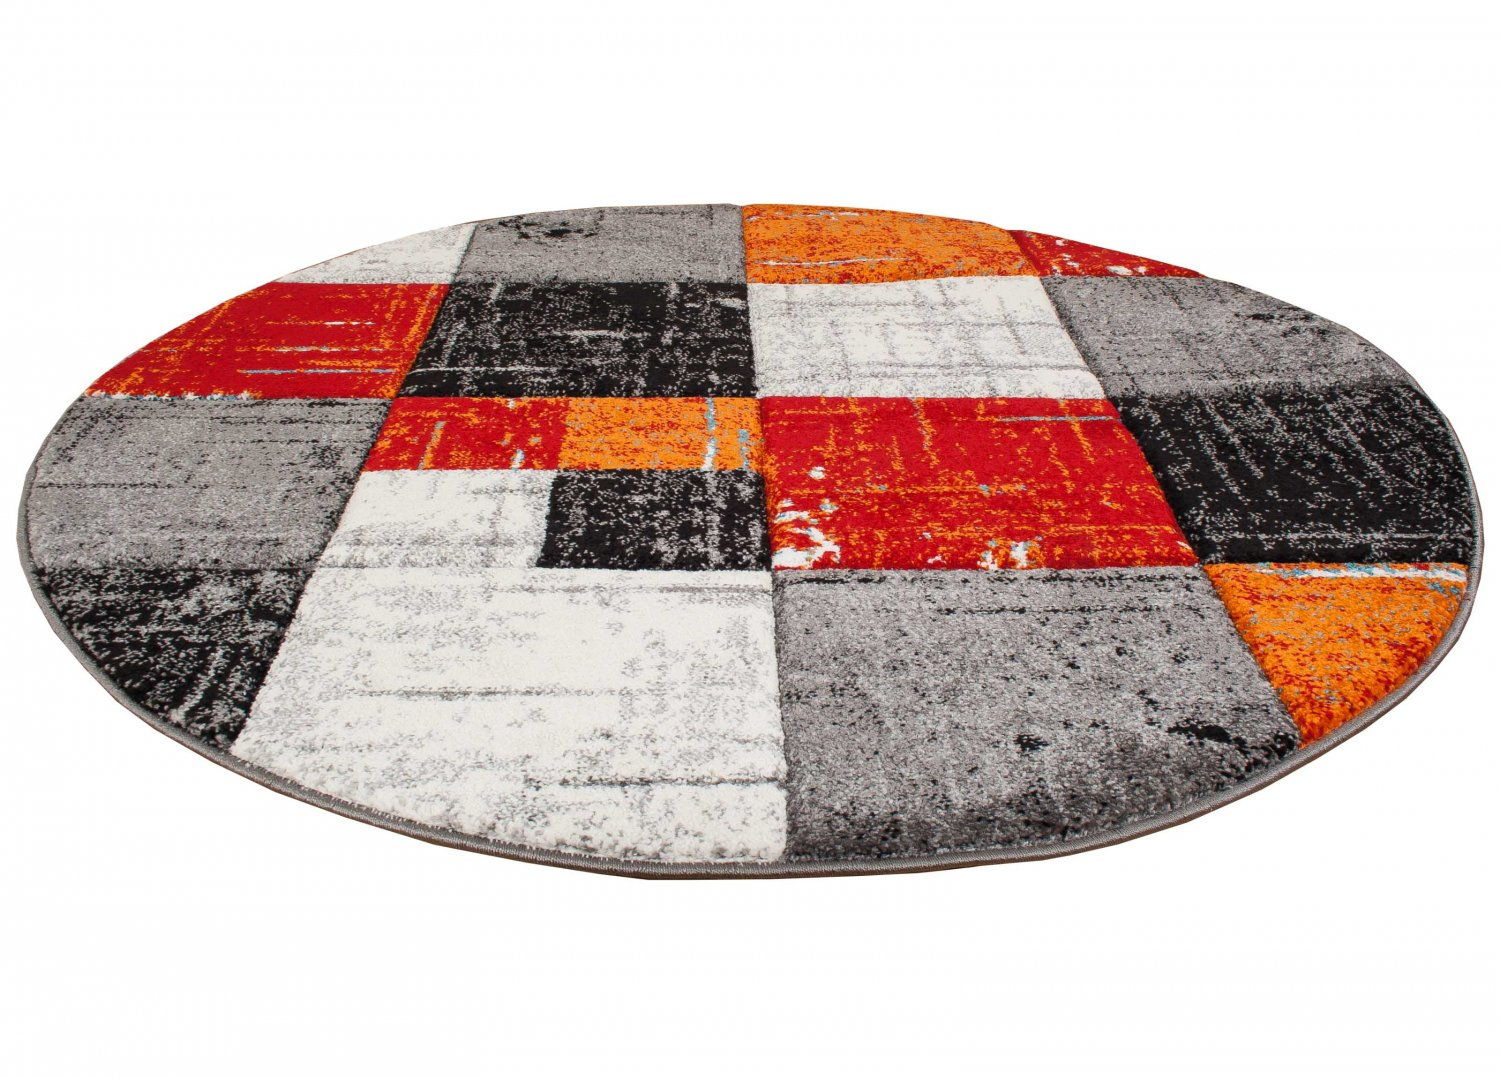 Round Rugs London Square Red Orange Round Rugs